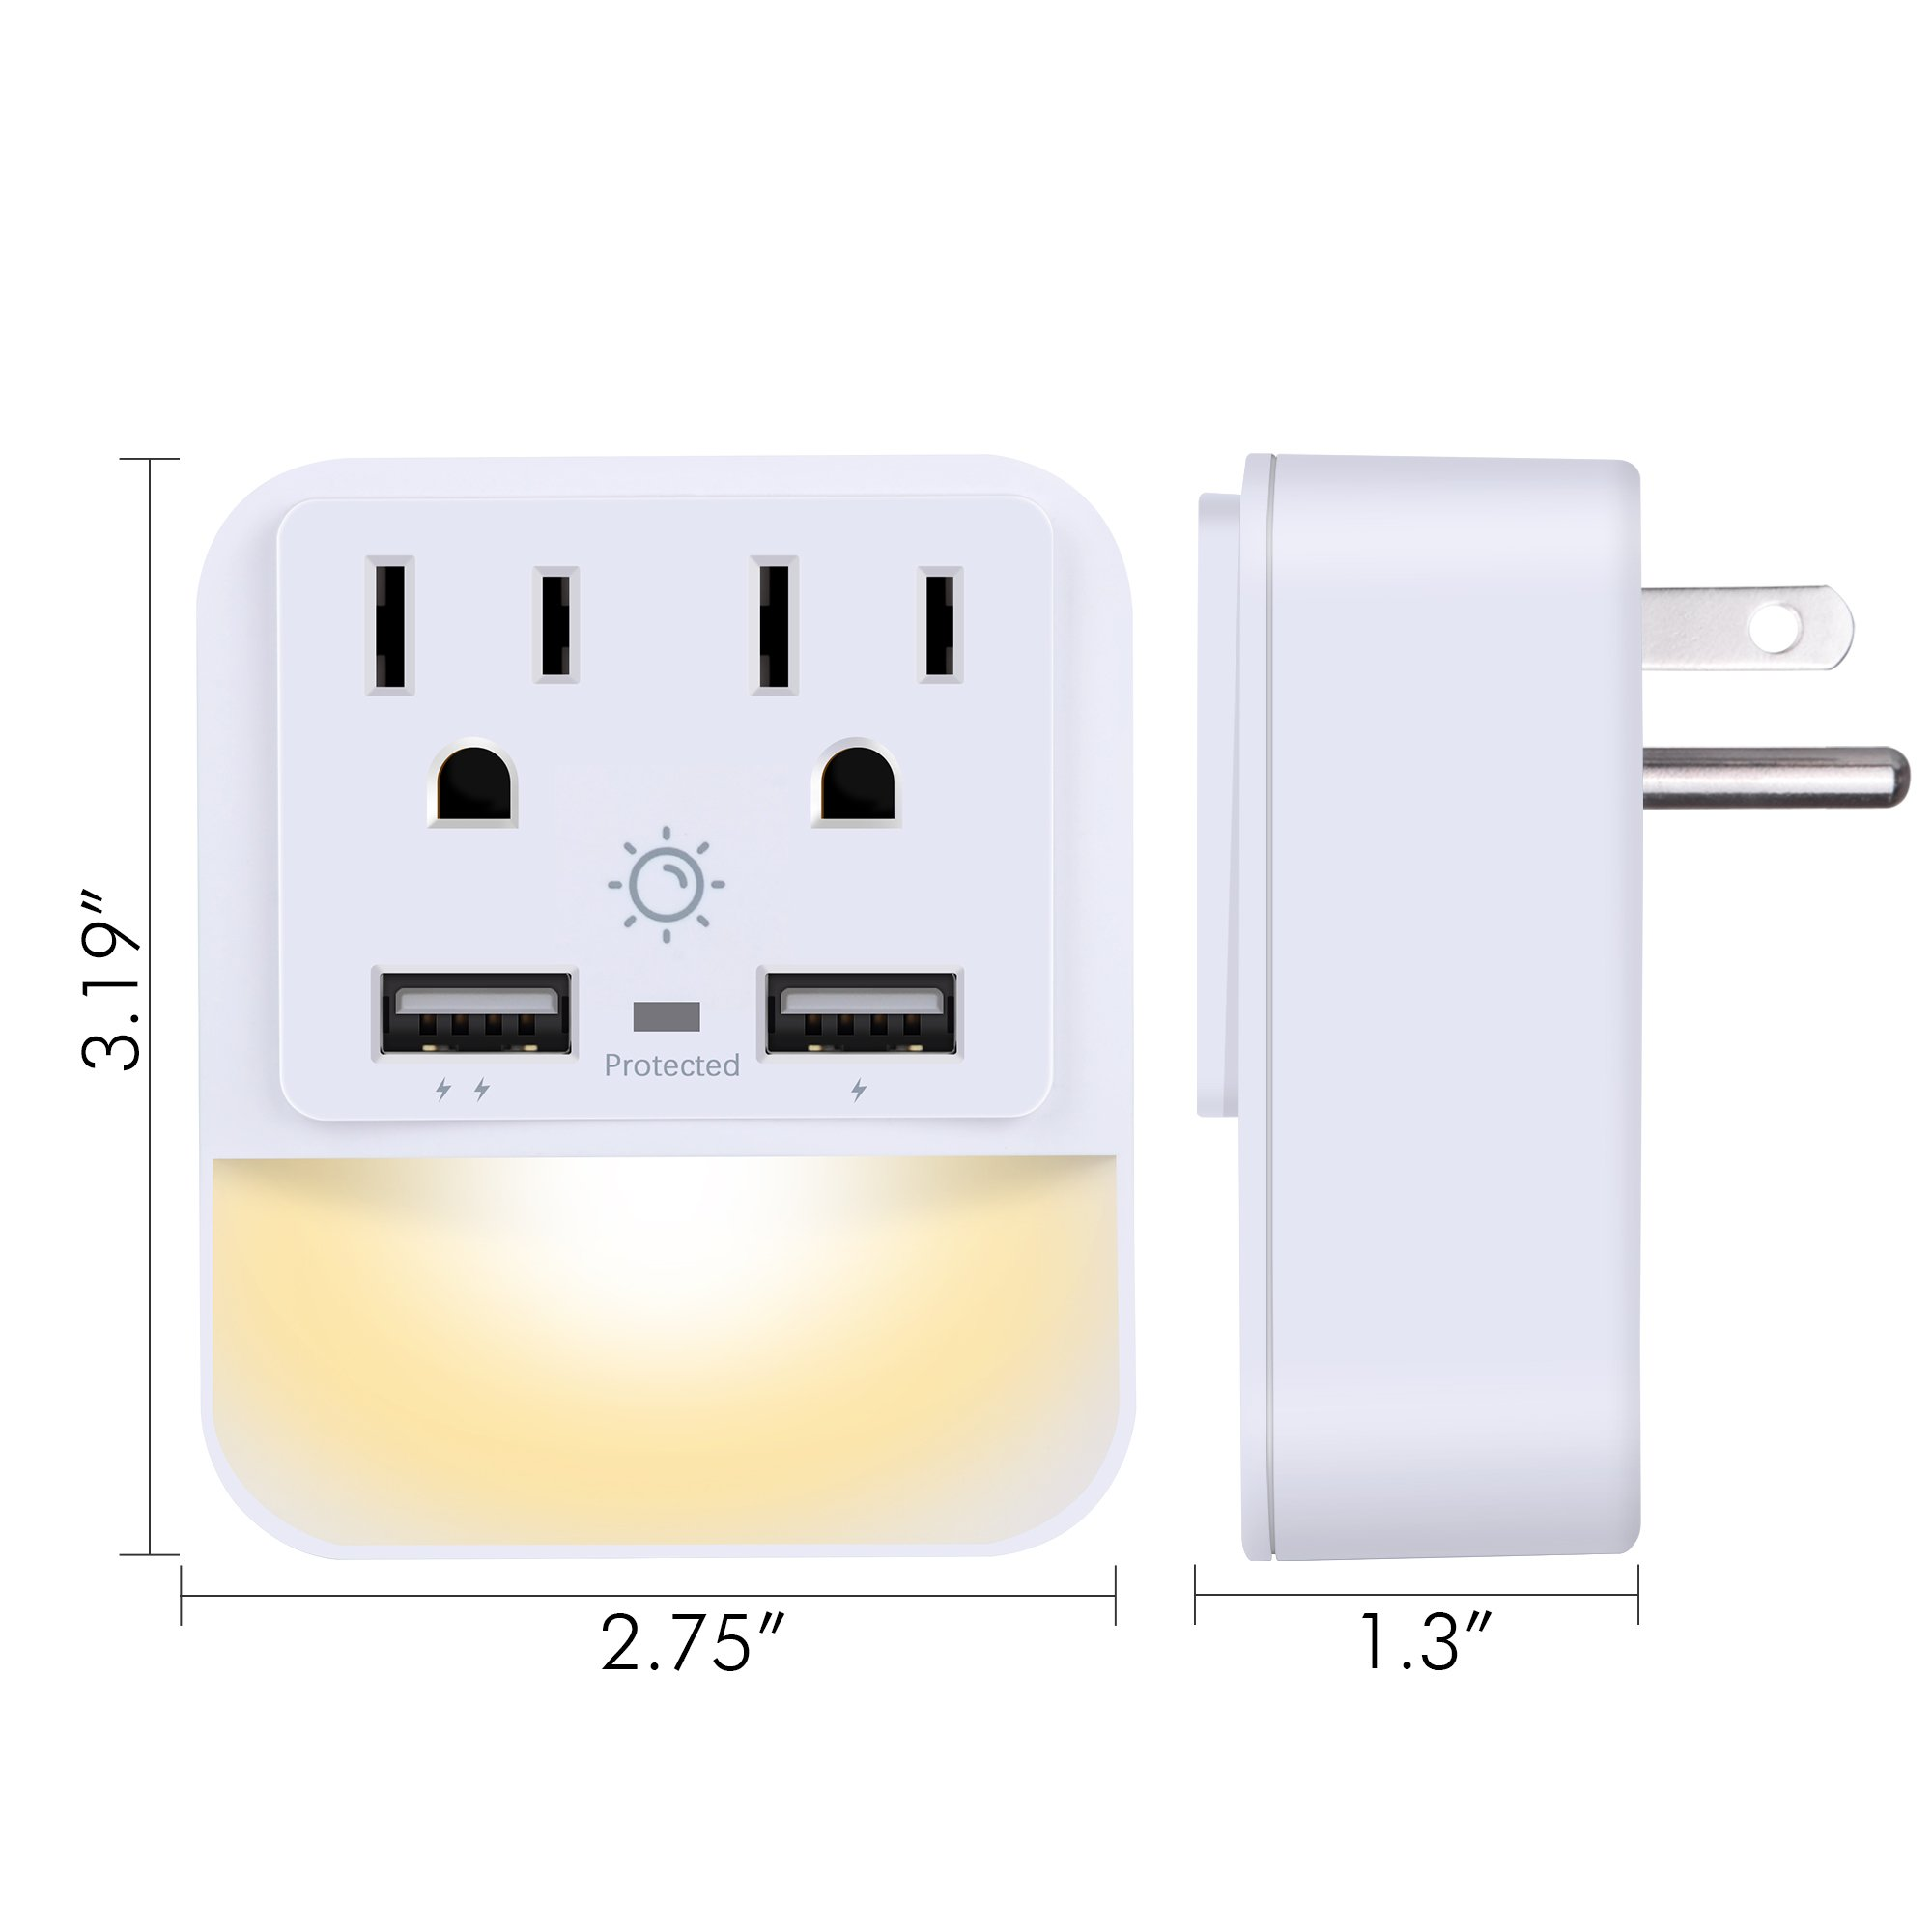 USB Wall Charger, Outlet Adapter, POWRUI 2-Pack Surge Protector(1080 Joules) Dual USB Charger Ports(2.4A Total), Dual Outlet Extender Dusk-to-Dawn Sensor Night Light, White, ETL Certified by POWRUI (Image #7)